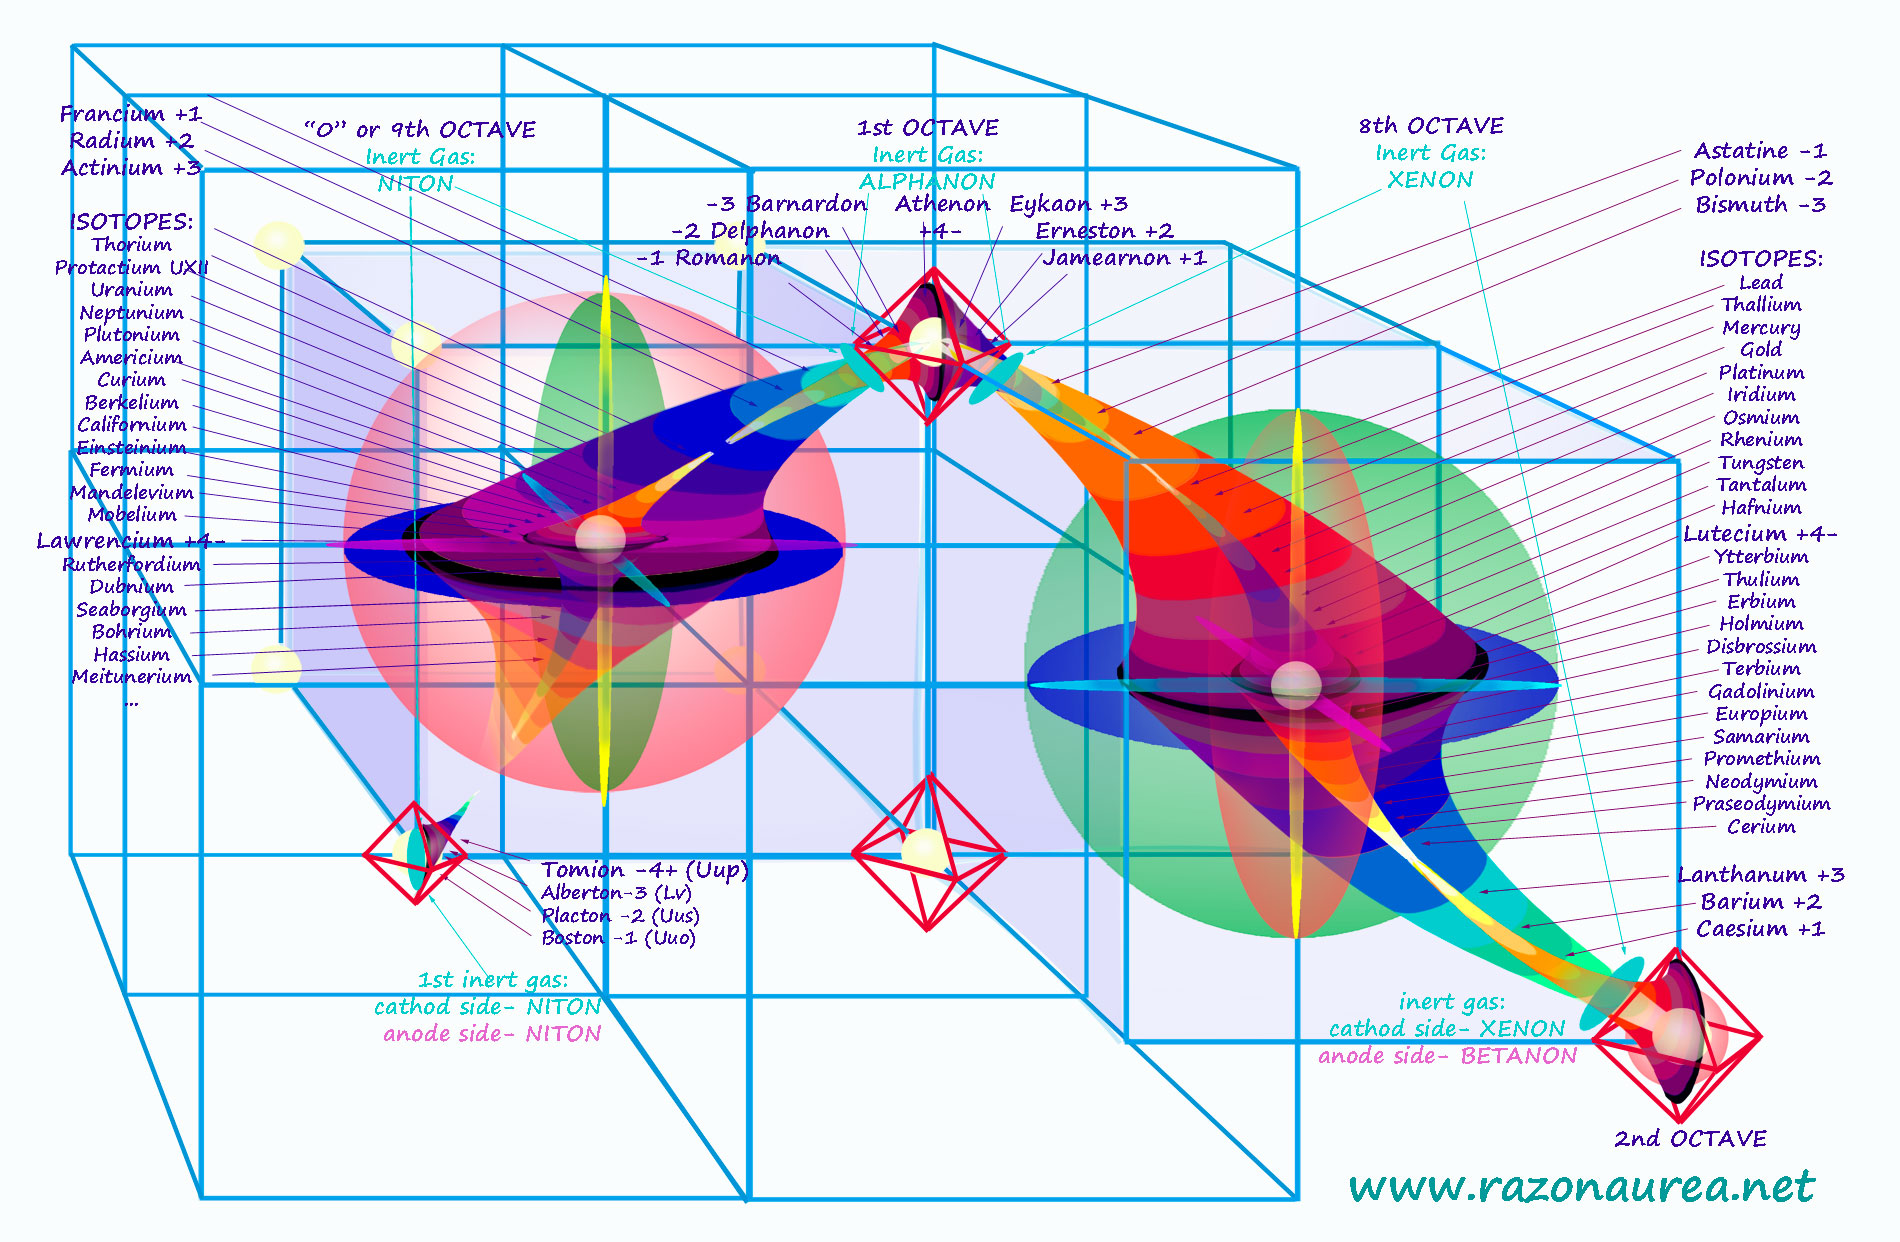 Periodic and cyclic table of elements of matter razon aurea periodic and cyclic table of elements of matter razon aurea geometria universal de maximilian pfalzgraf gamestrikefo Images